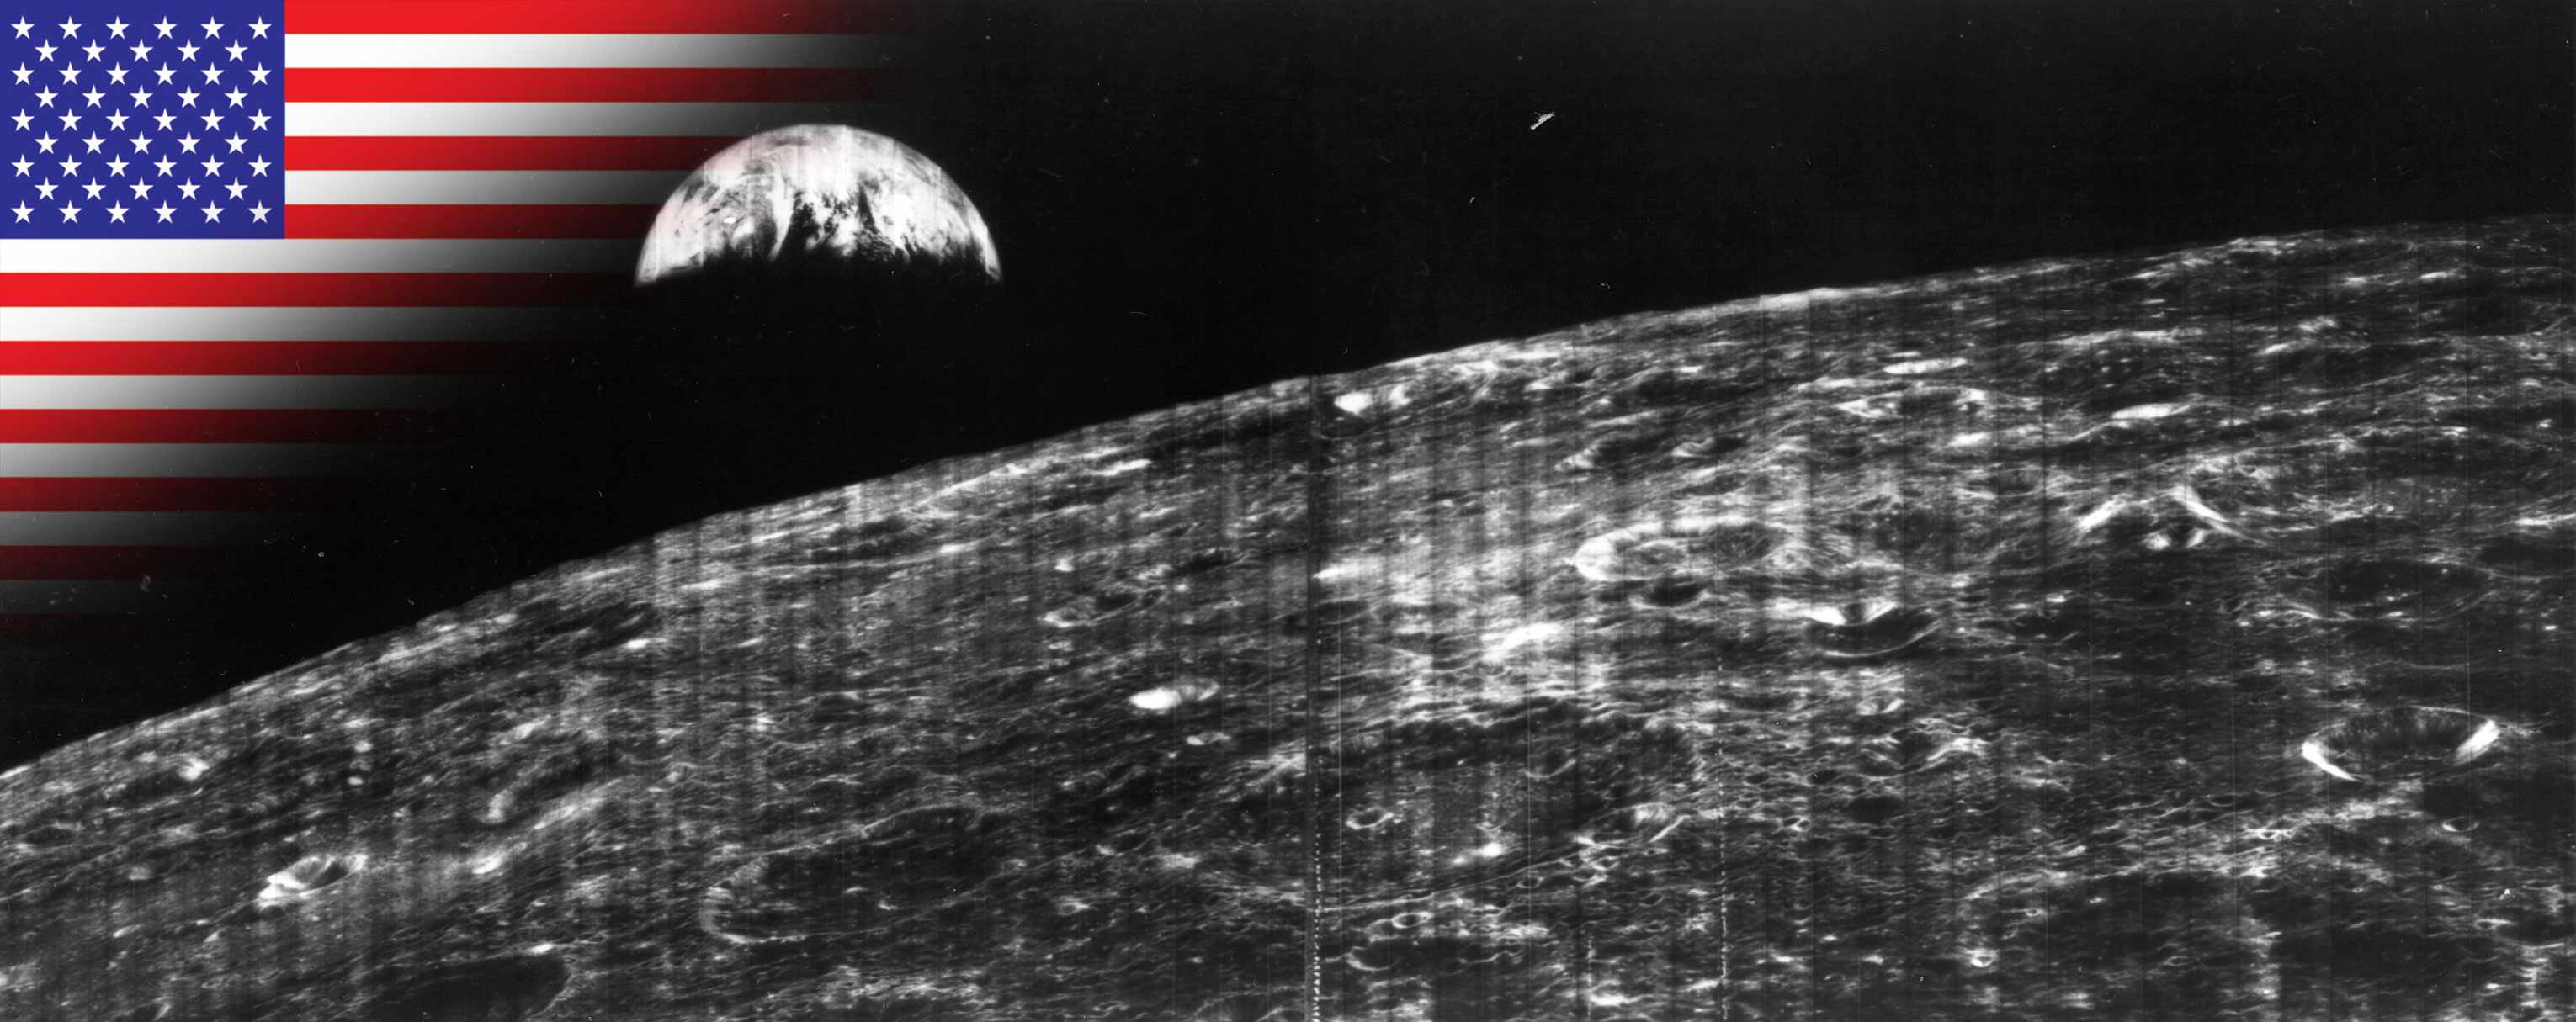 Lunar Orbiter 1 launched to take images of the Moon. © NASA